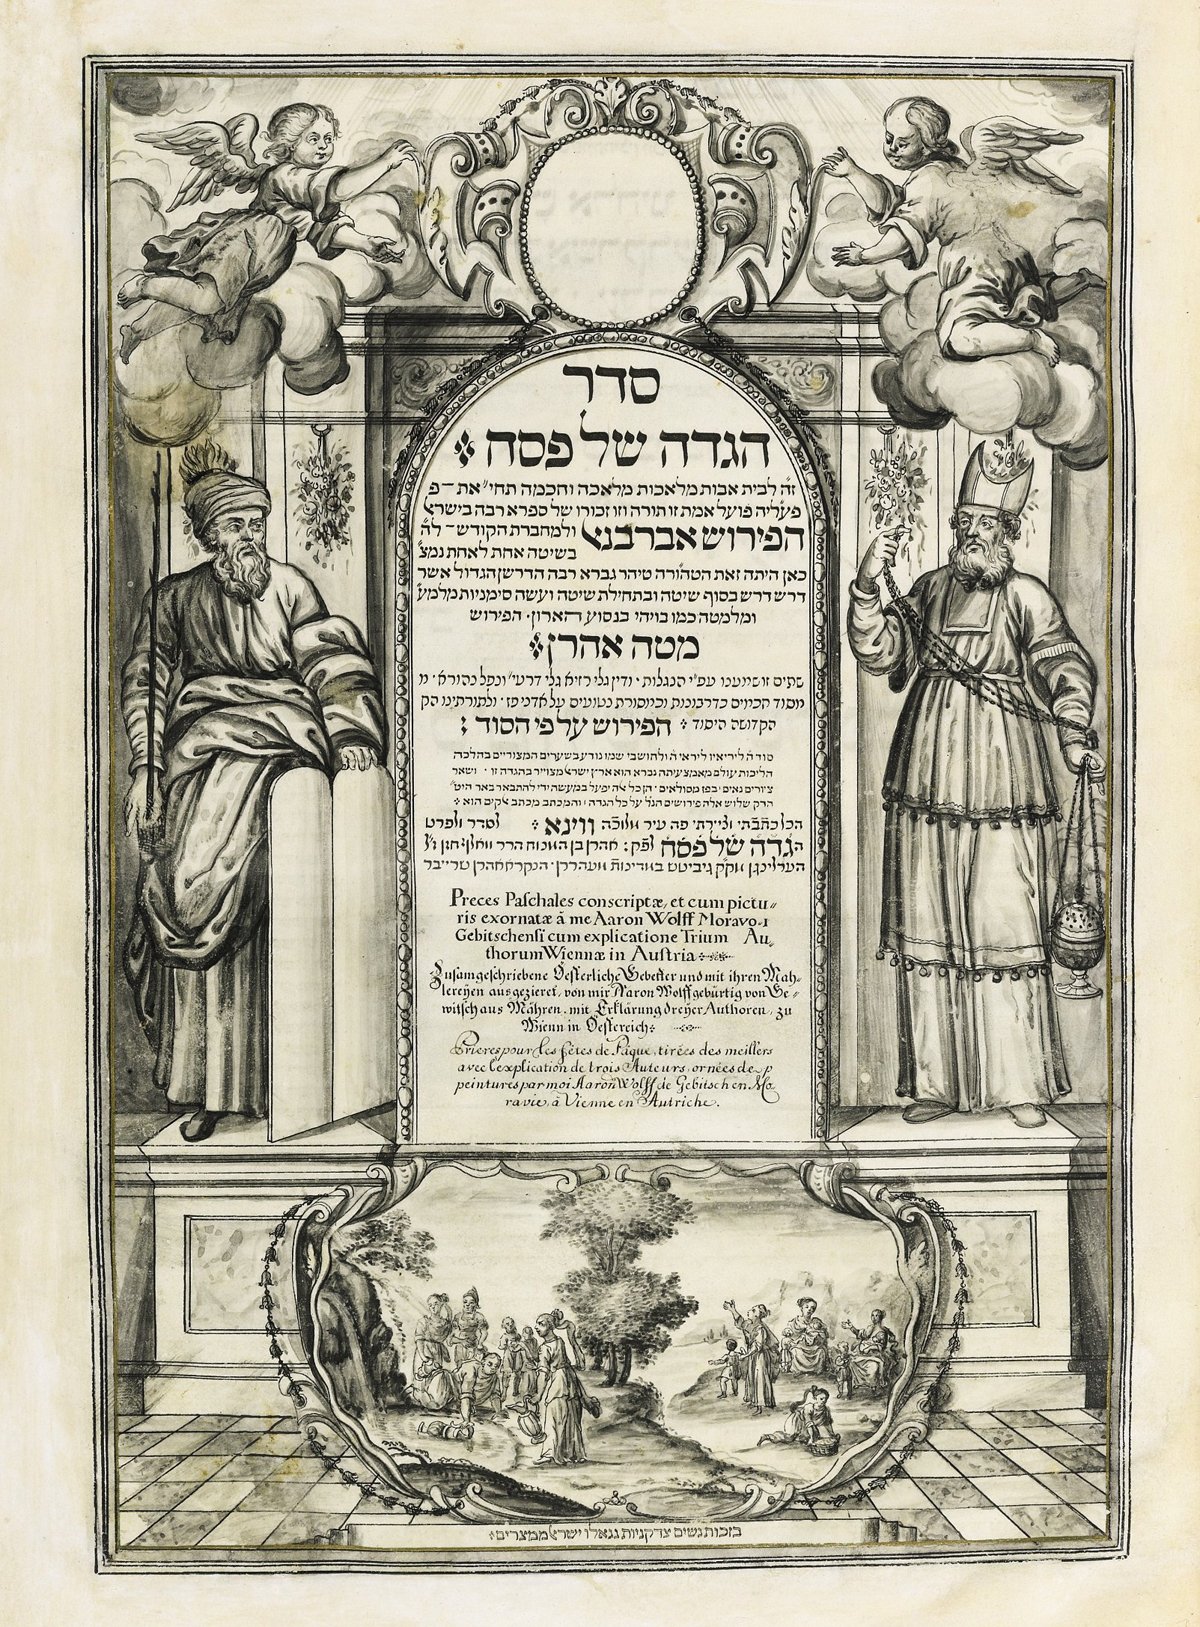 Herlingen Haggadah 1730, written and illustrated by Aaron Wolff Herlingen Courtesy Sotheby's